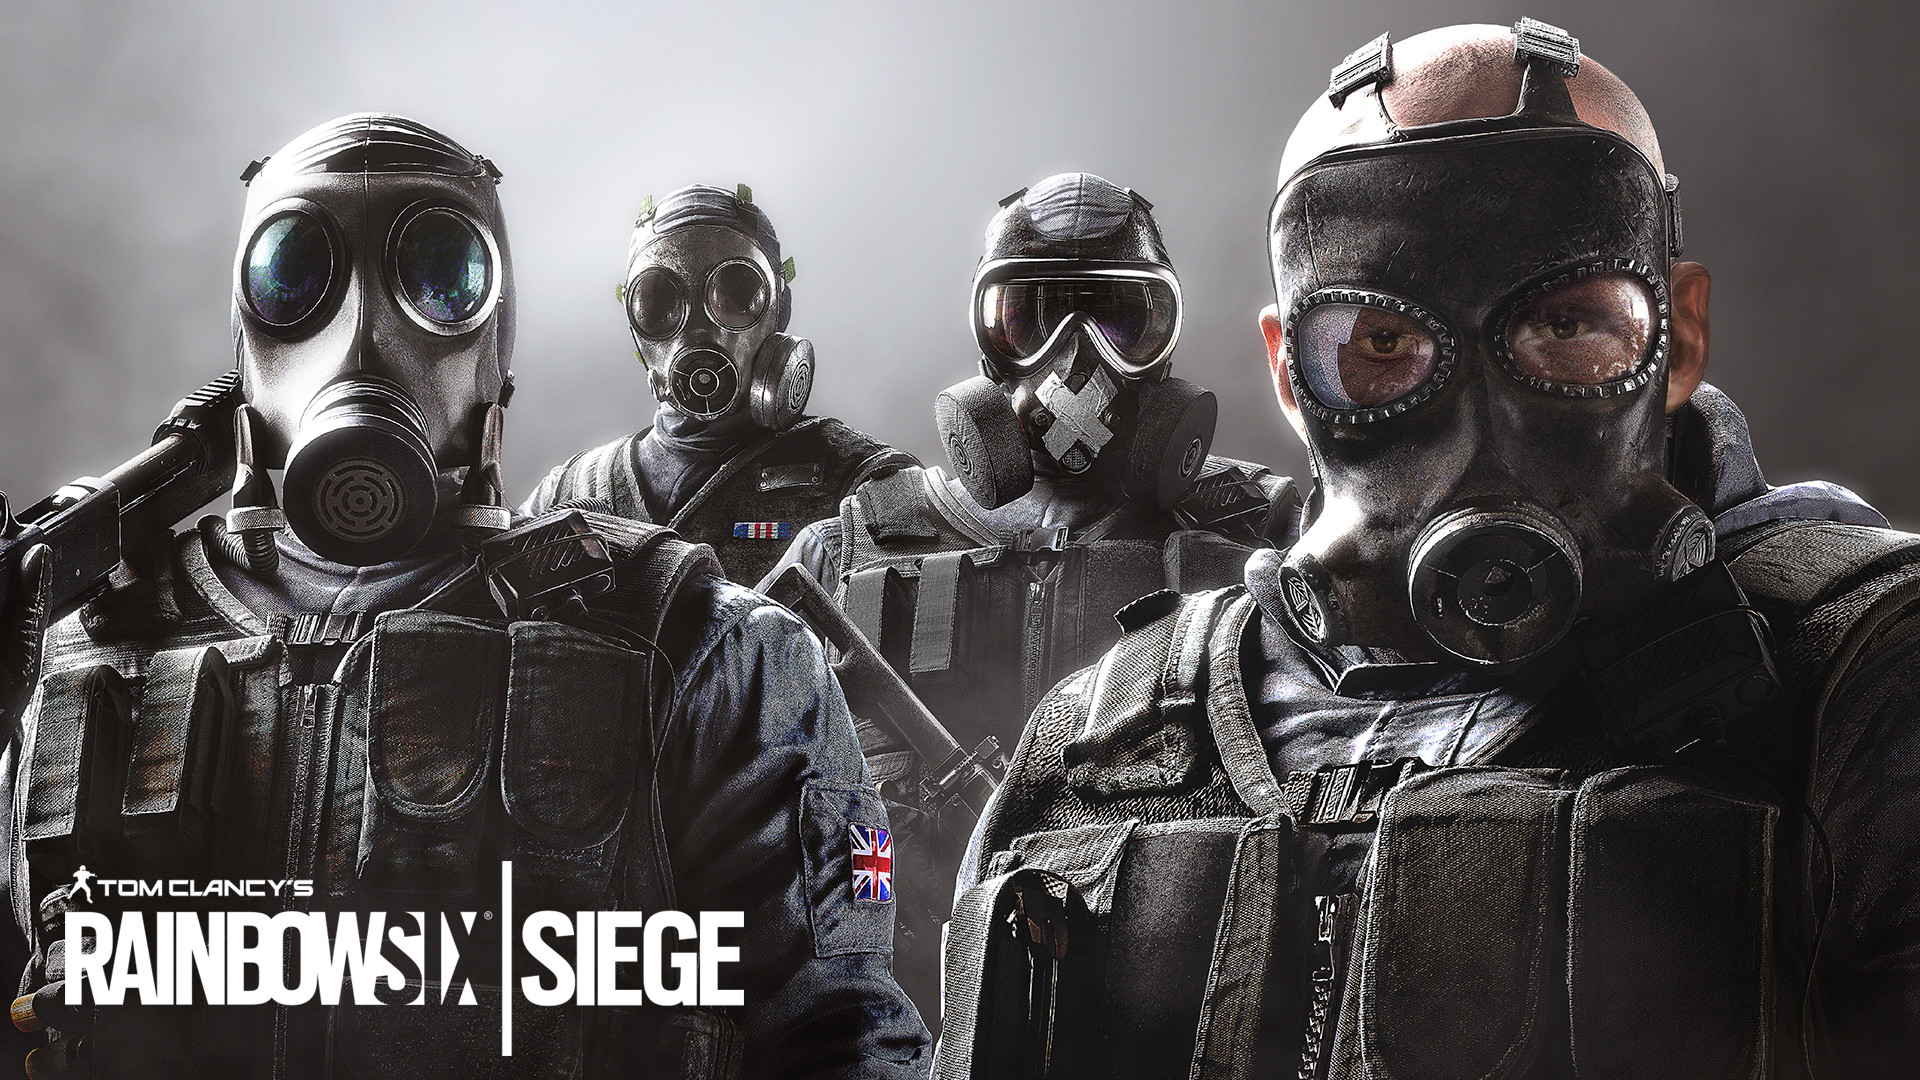 Rainbow Six Siege Hd Wallpaper New Tab Theme Playtime